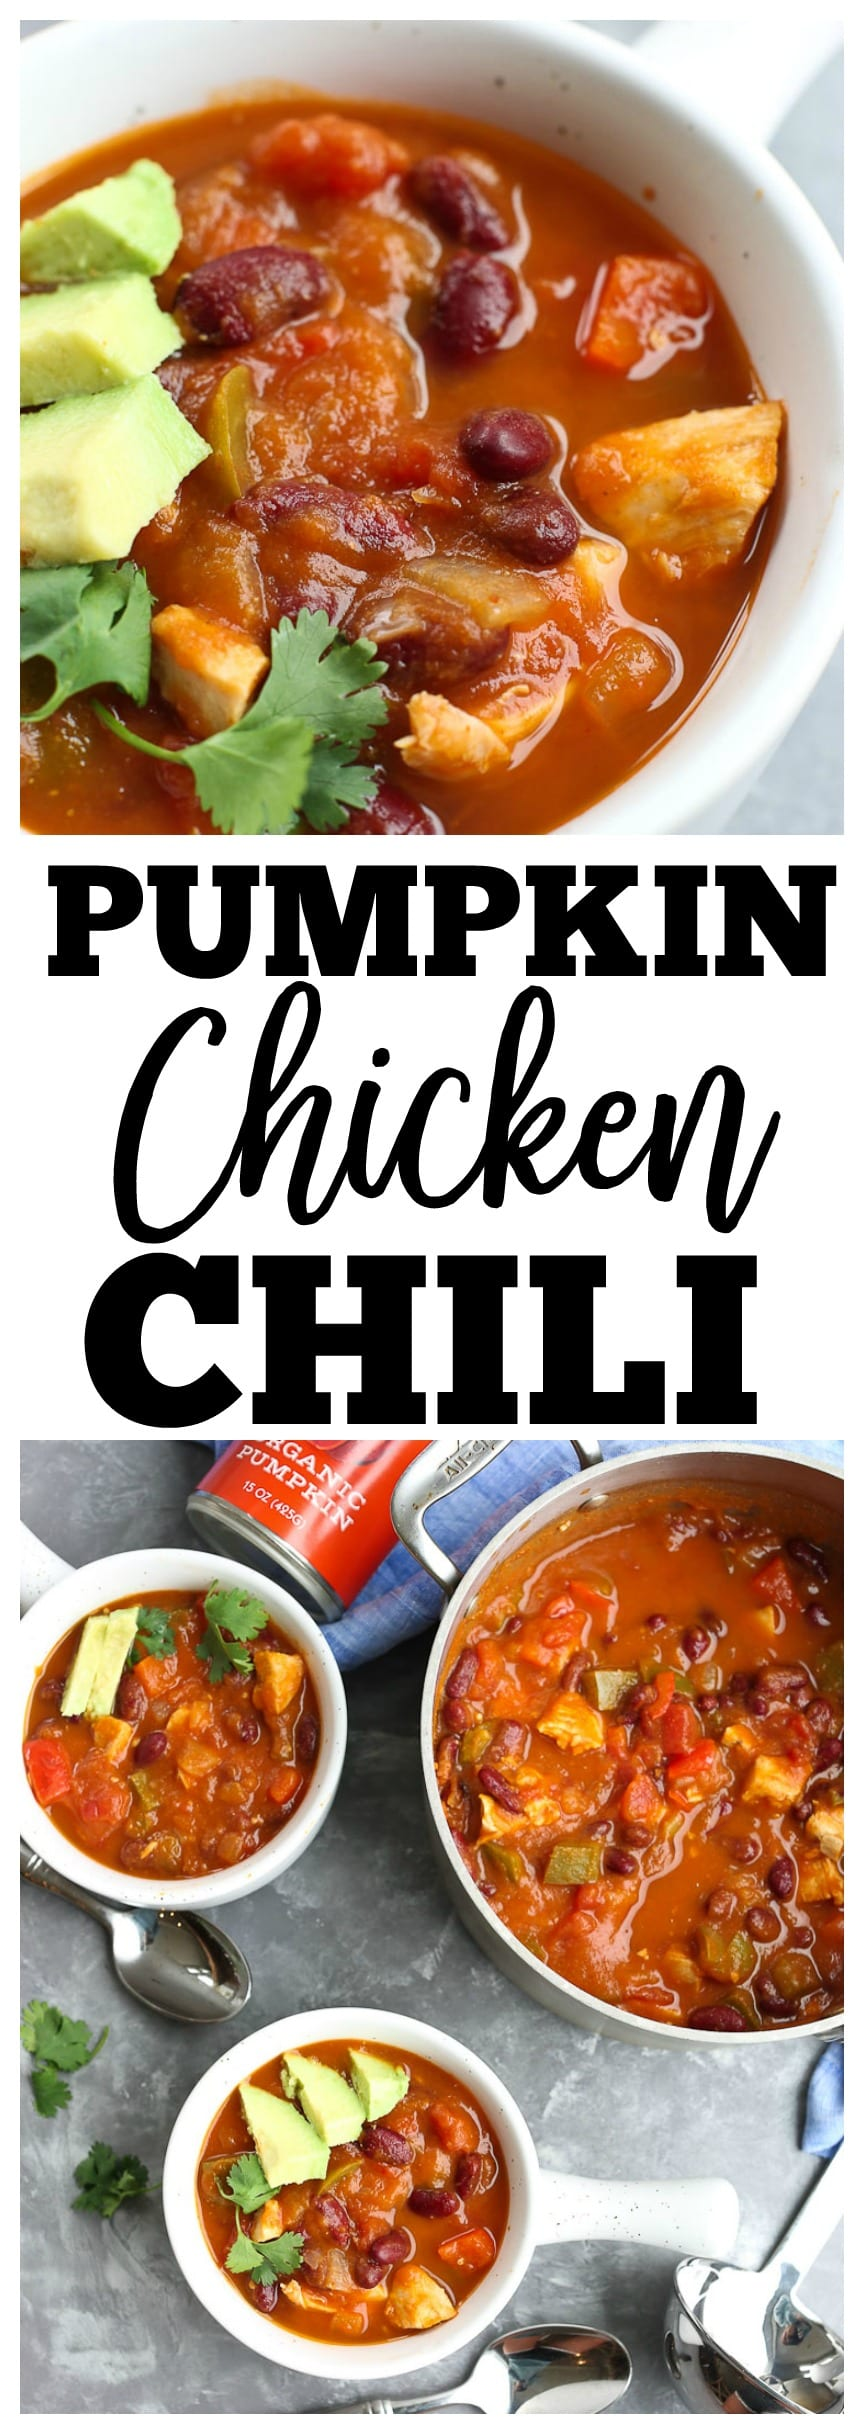 Pumpkin Chicken Chili Recipe. Dairy-free, gluten-free recipe, easy quick weeknight dinner